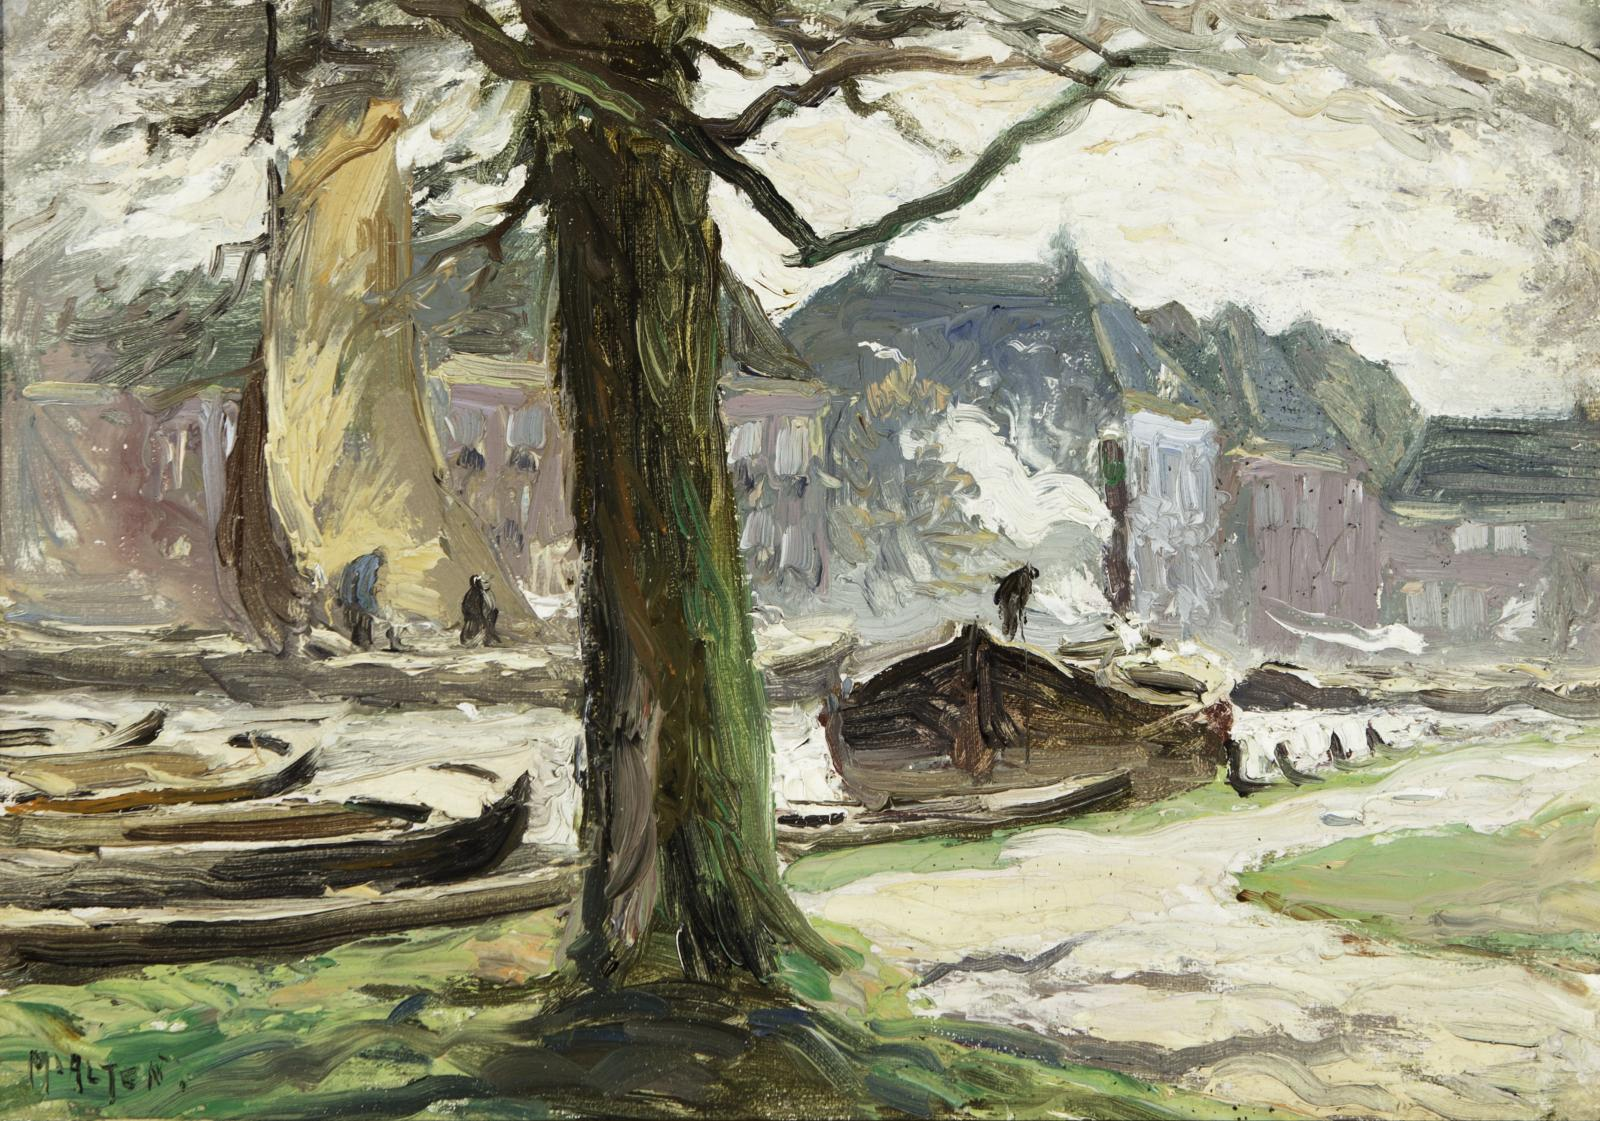 Boats docked along a shoreline with a large tree trunk at the center of the image.